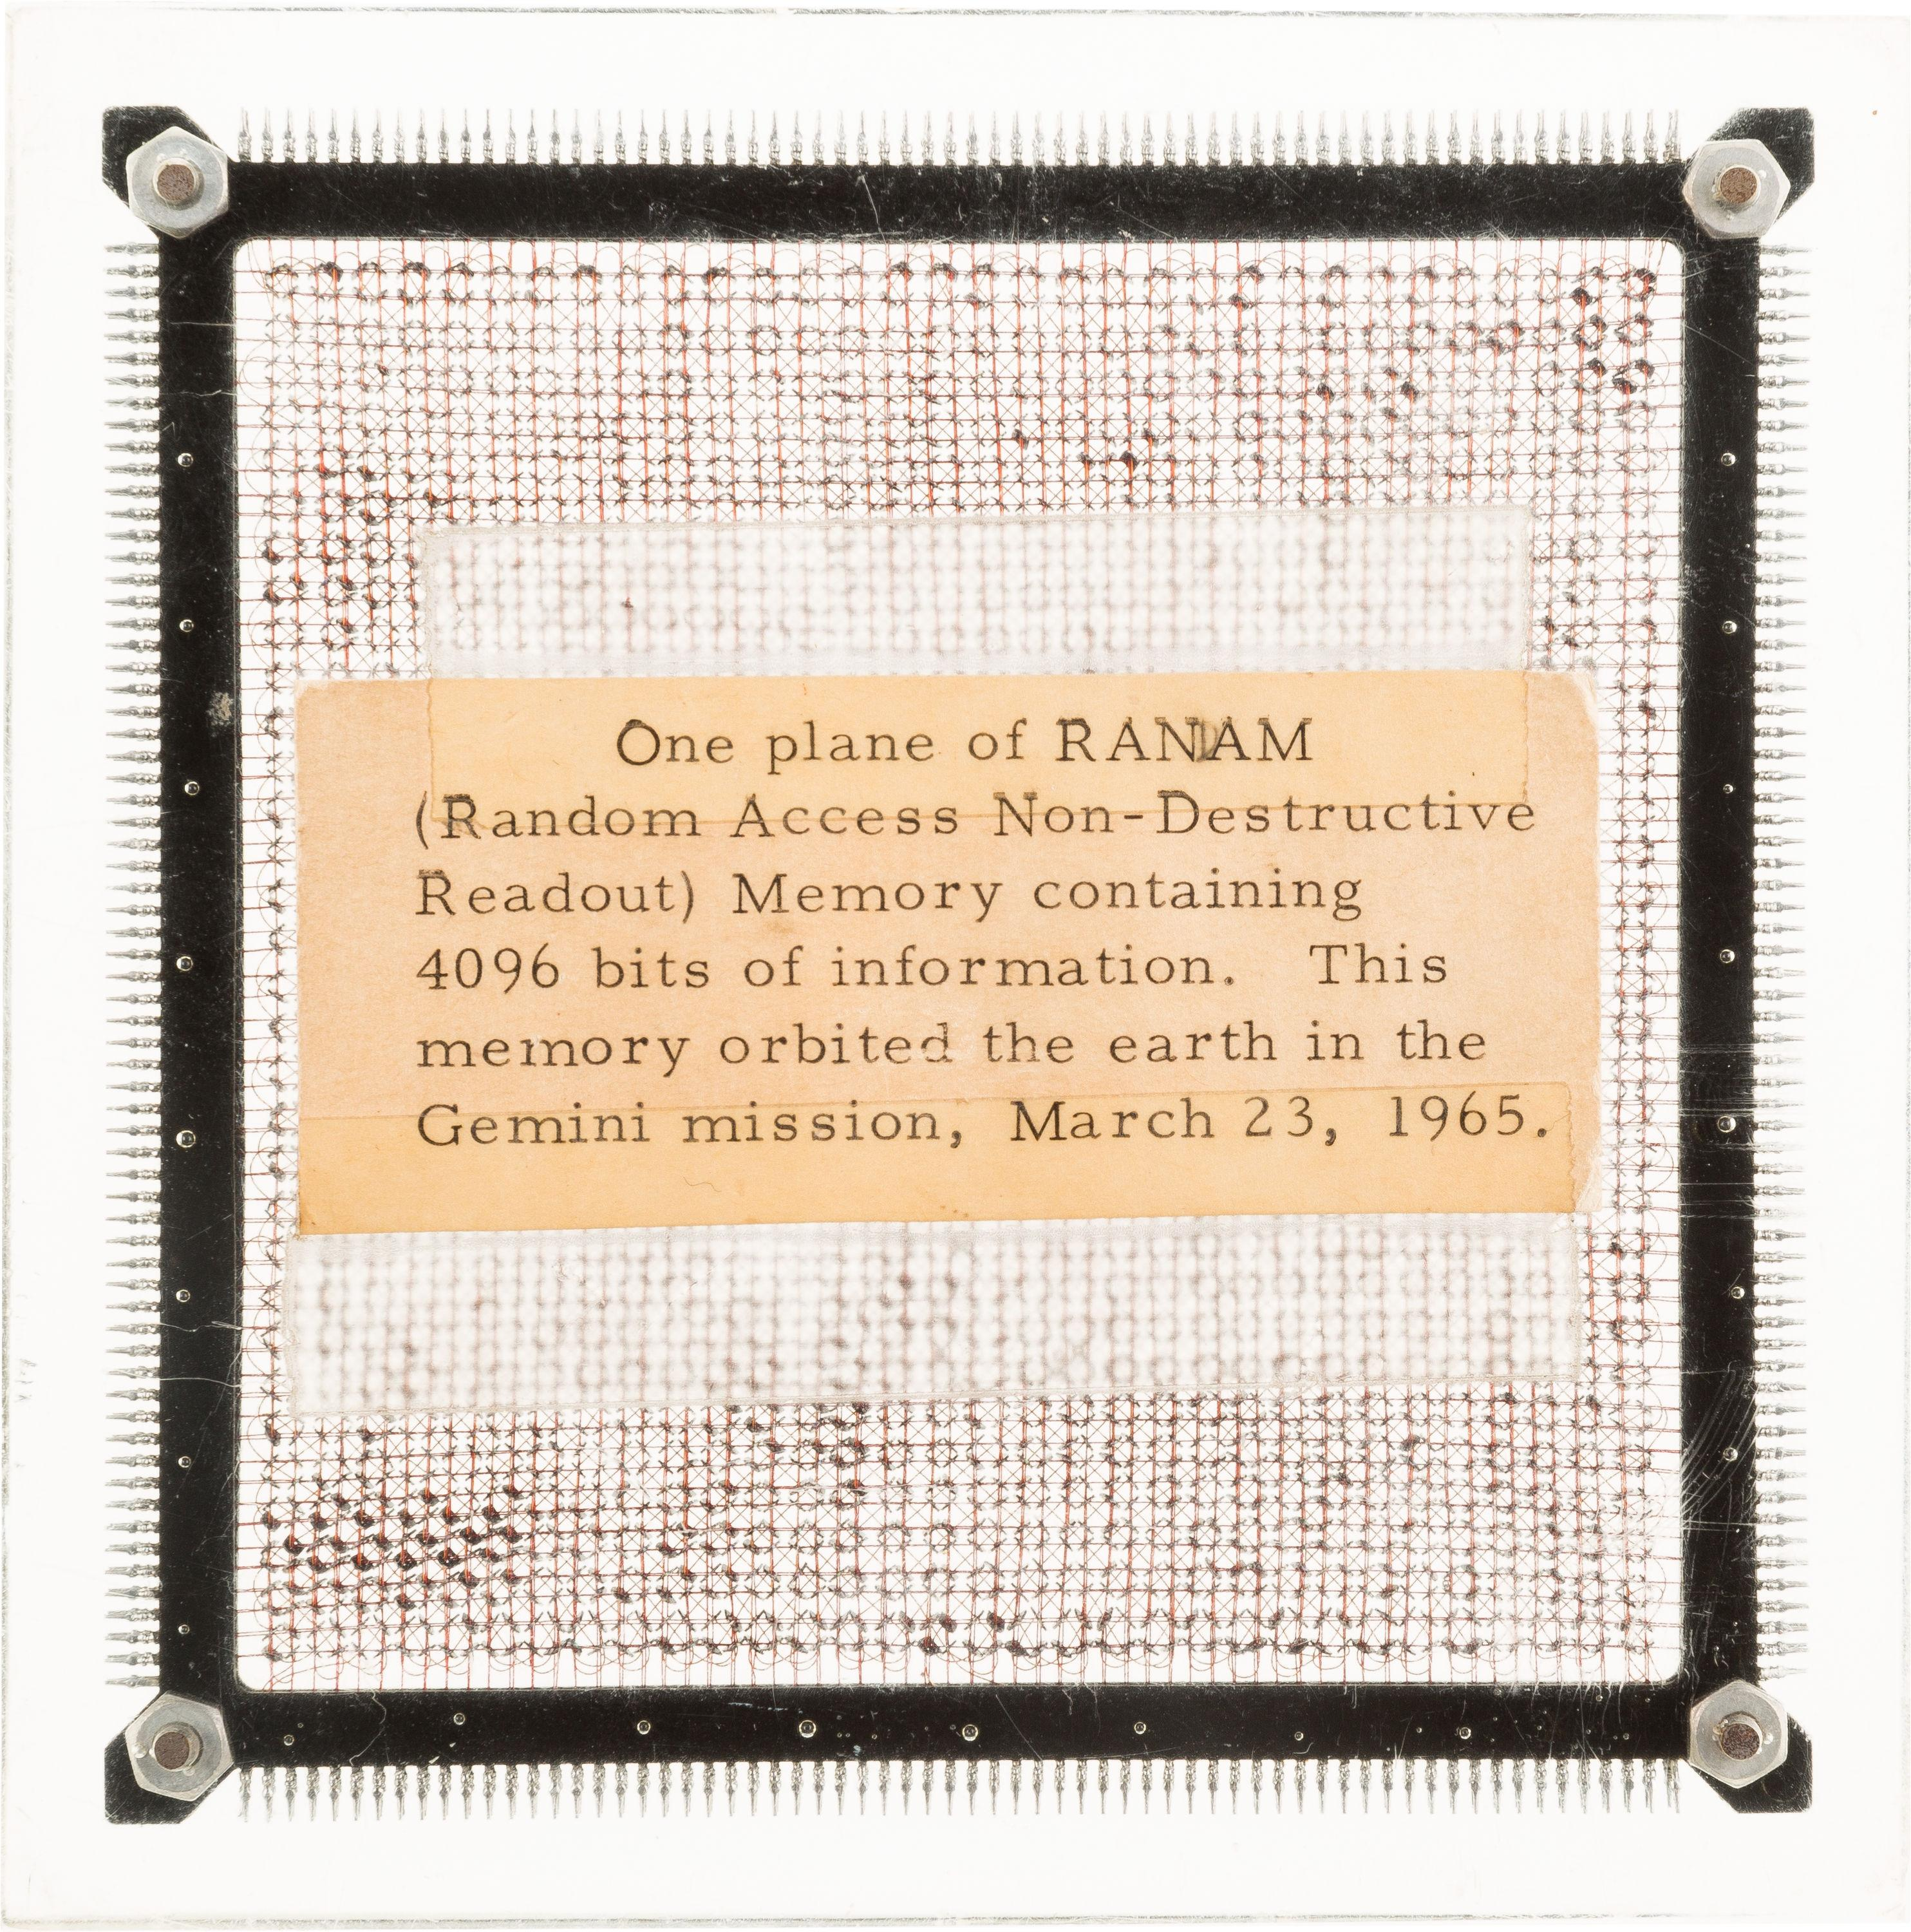 A piece of memory from Gemini 3 spacecraft is up for auction